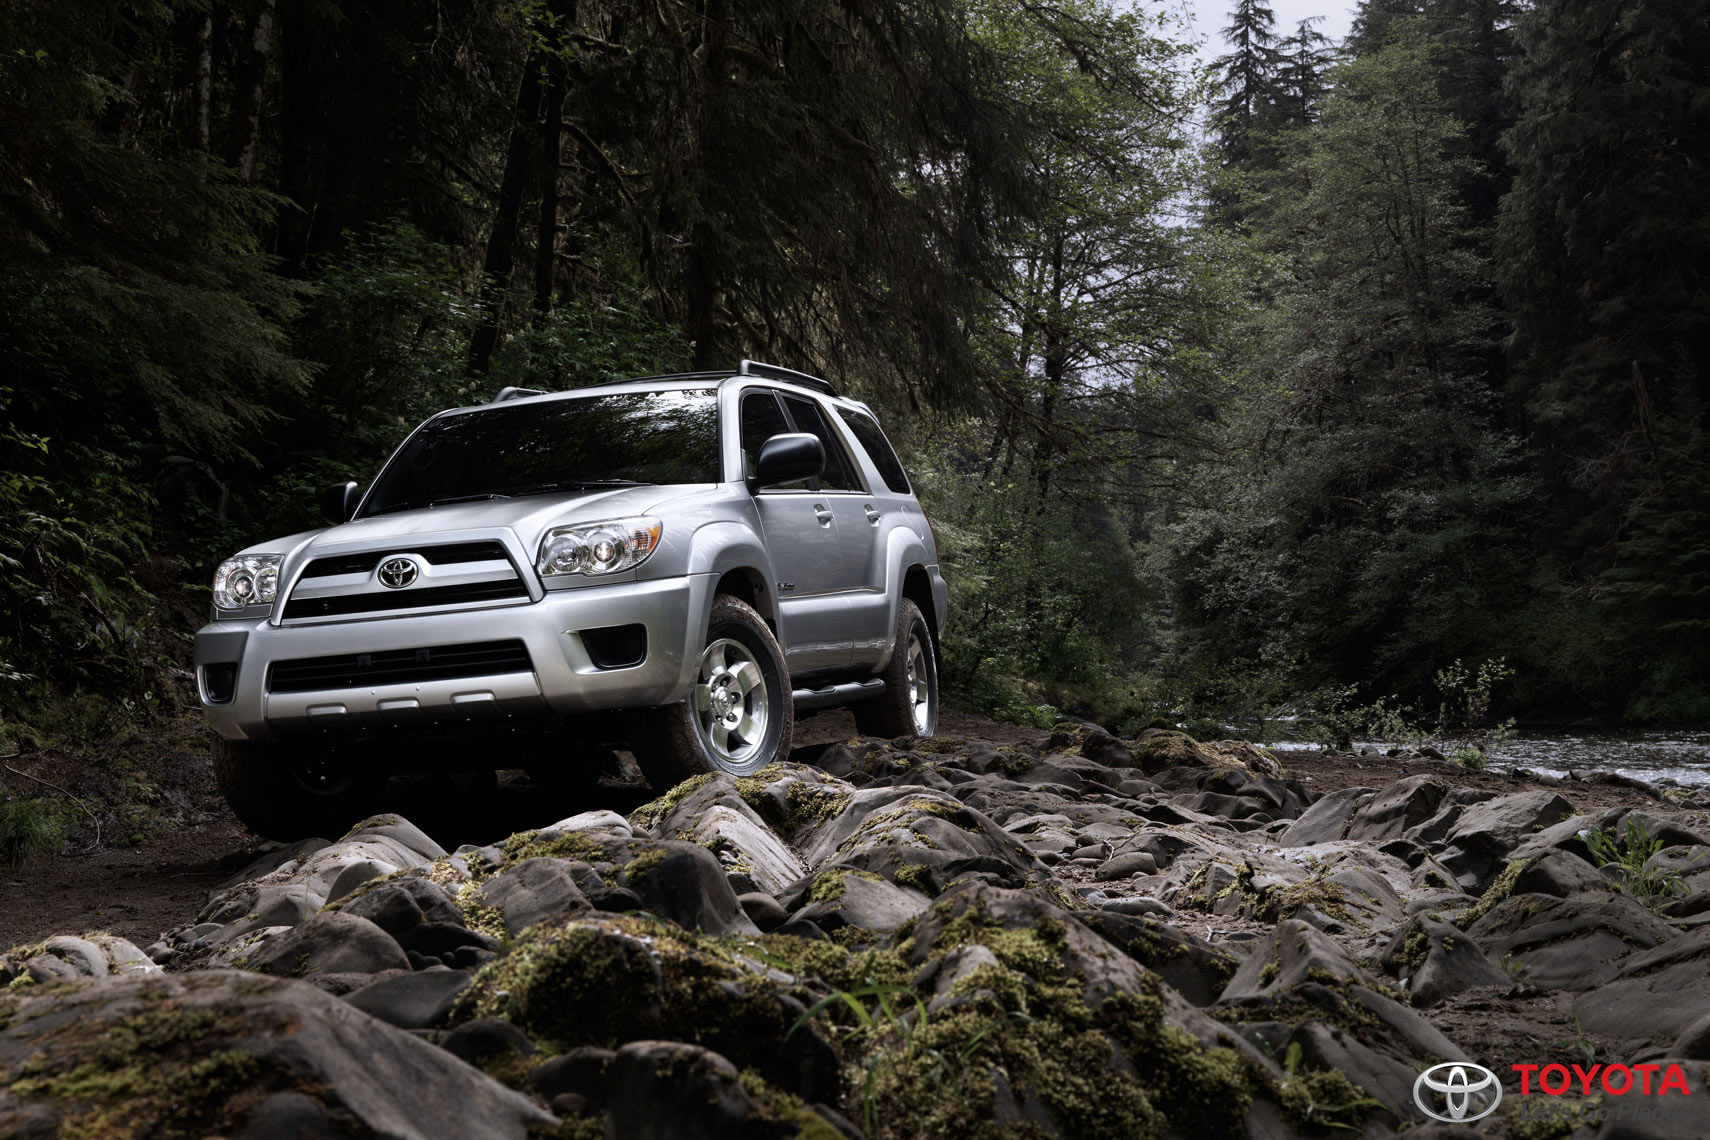 Toyota_4Runner-on-Rocks-10-2008